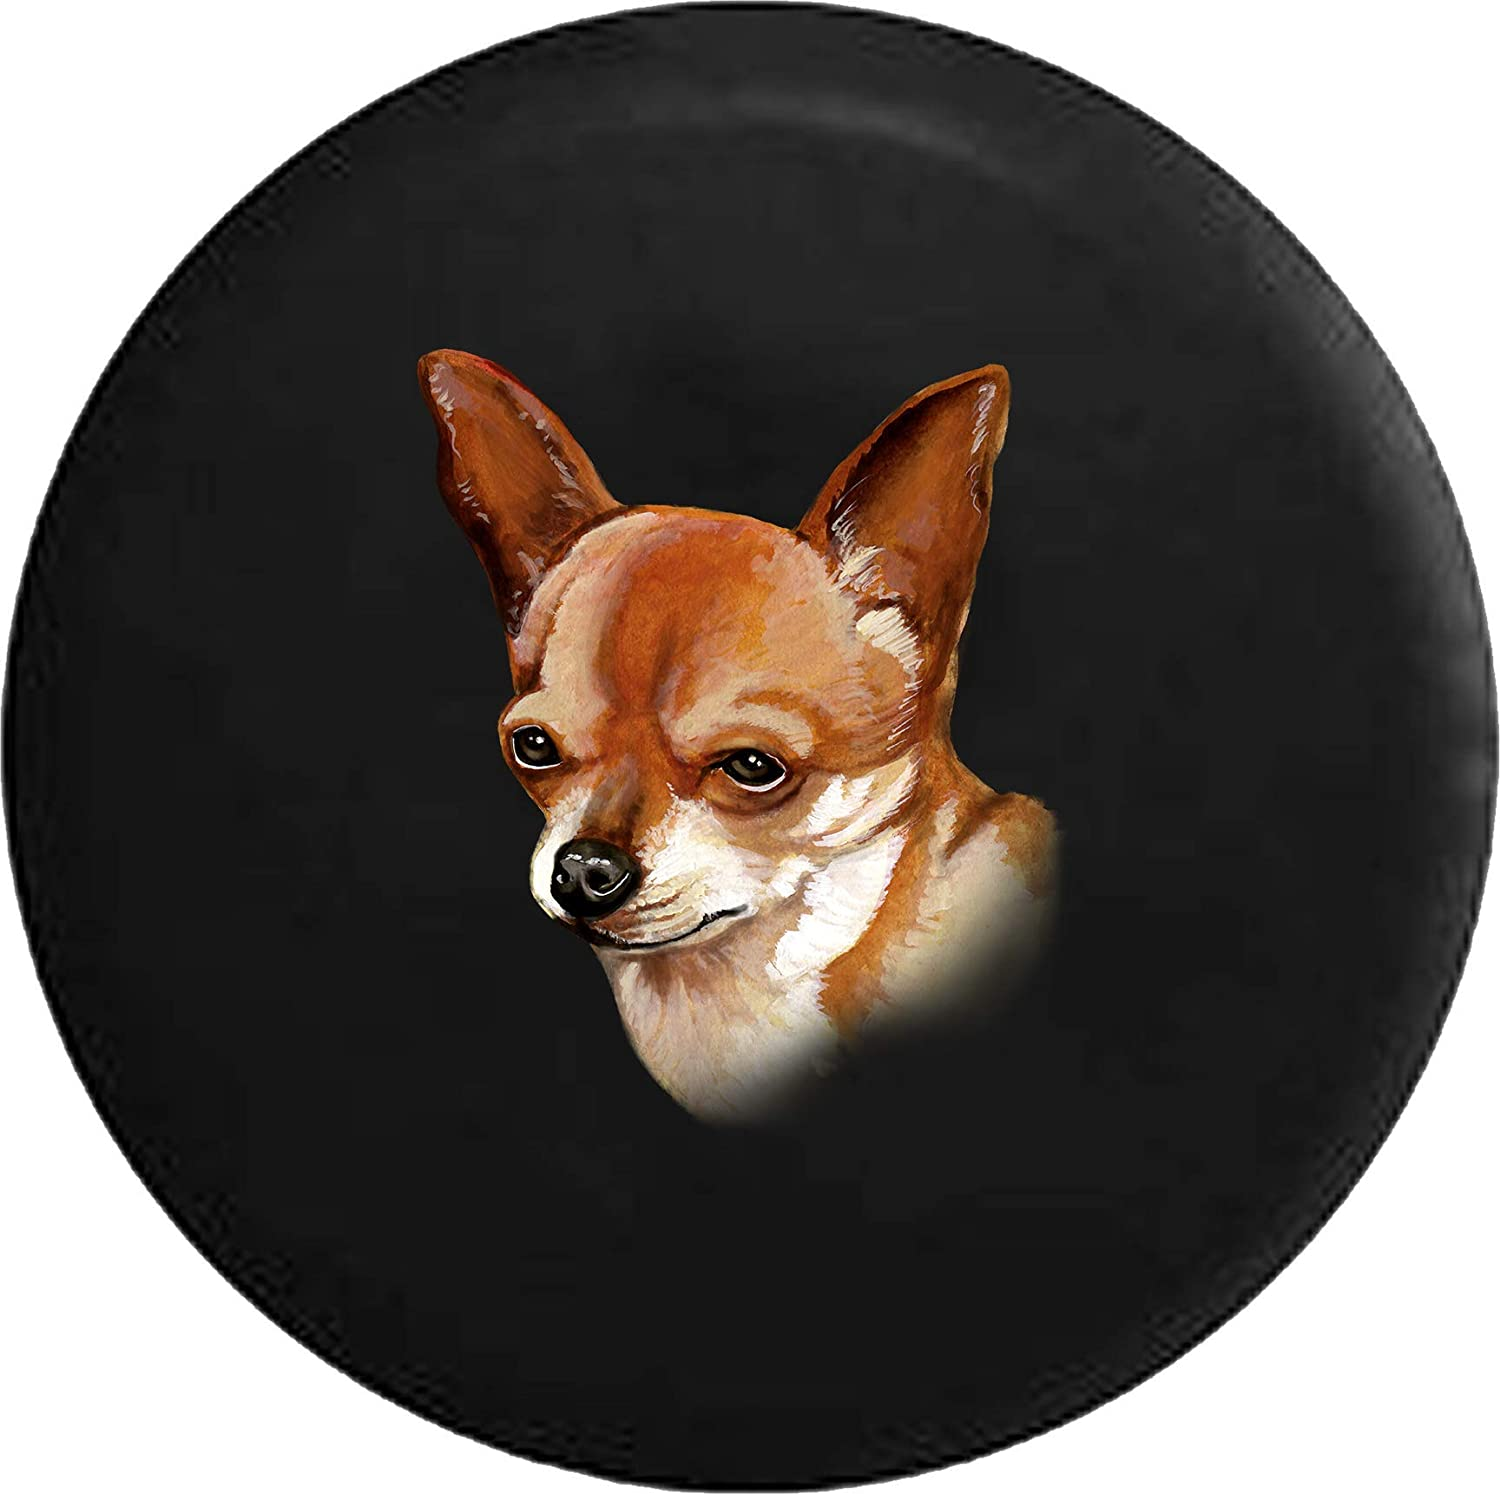 Safety and trust Caps Supply Spare Tire Cover Chihuahua Attention brand Lover F Adopt Rescue Dog